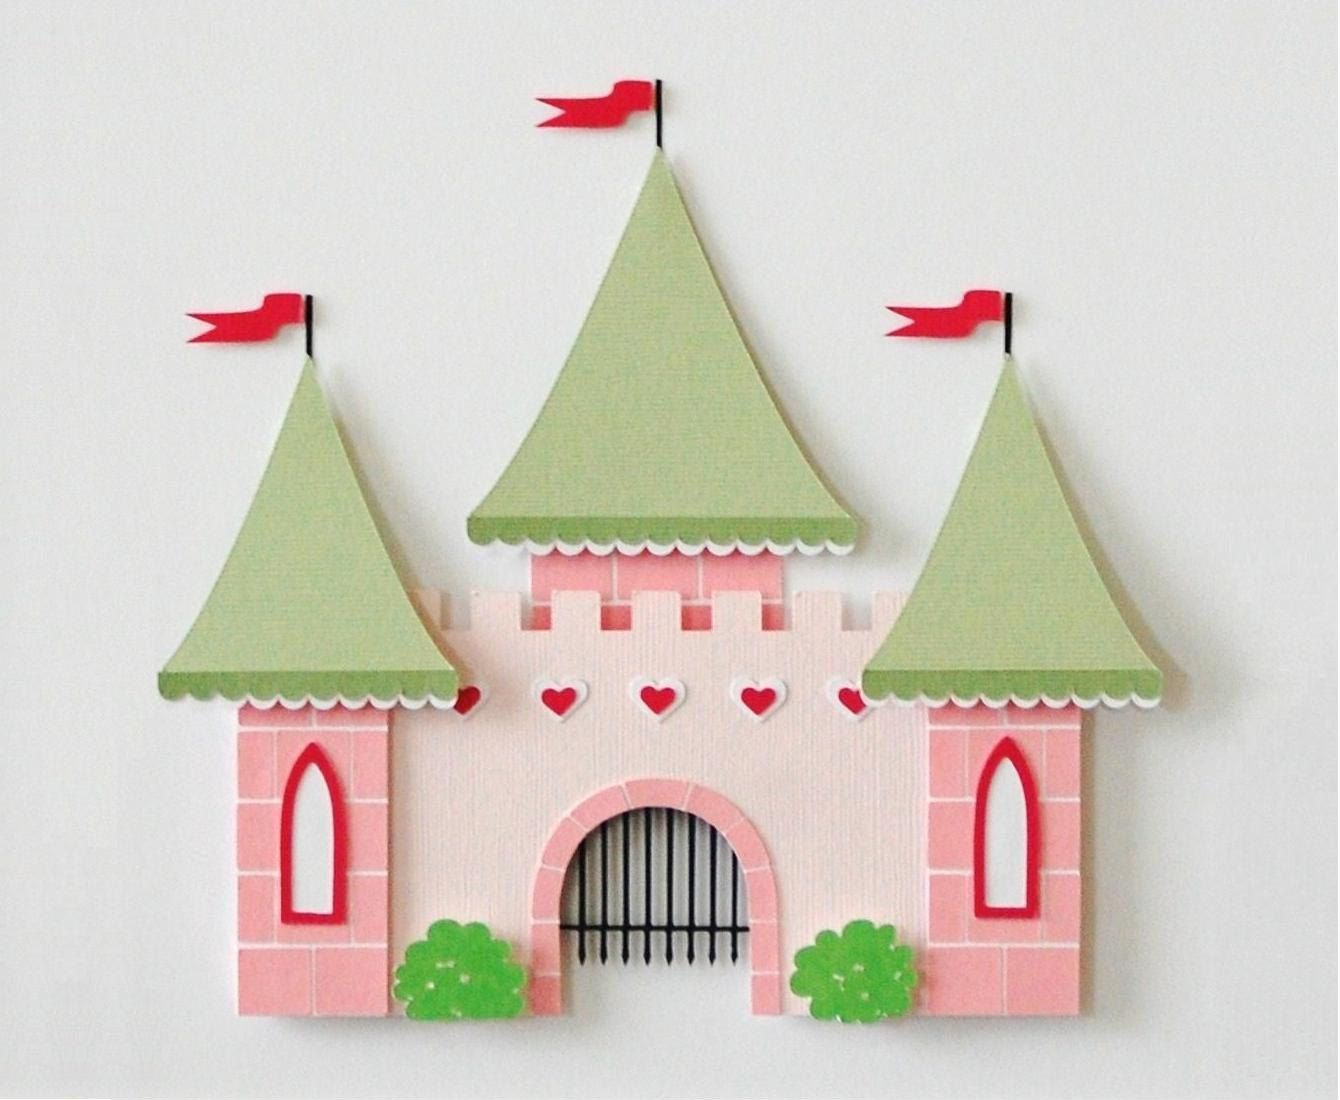 castle fairy tale decor kids wall decor princess theme matted art custom decor pink green castle - Kids Wall Decor